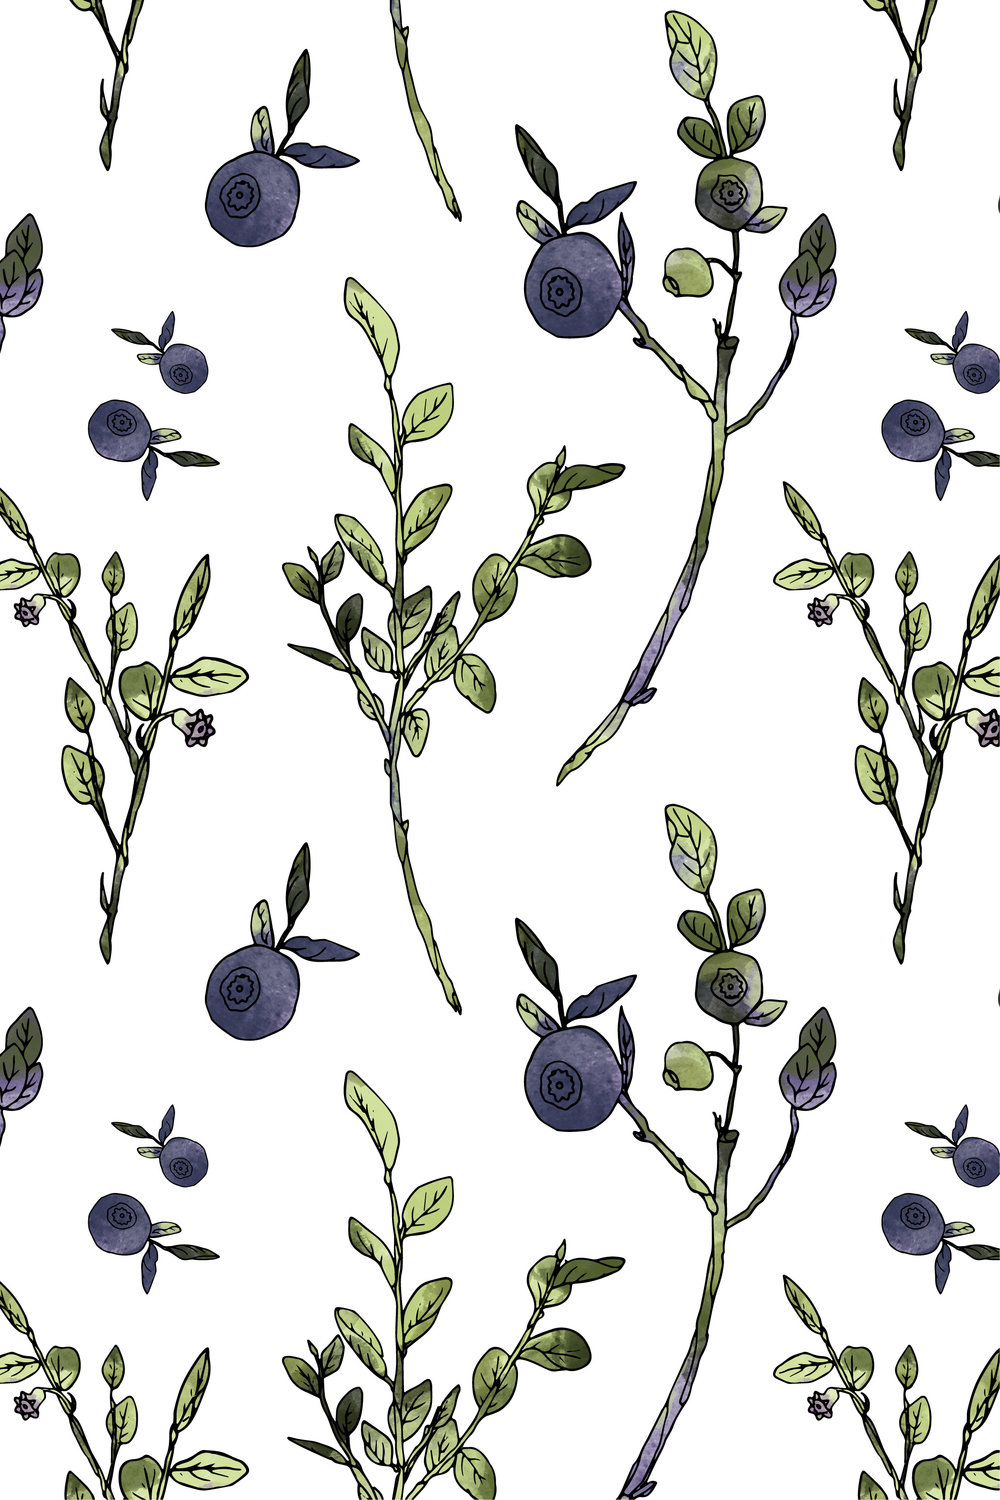 Bilberry   Original bilberry illustration - Hand drawn, Coloring with custom brush created with Adobe capture, Final pattern - Adobe Illustrator.